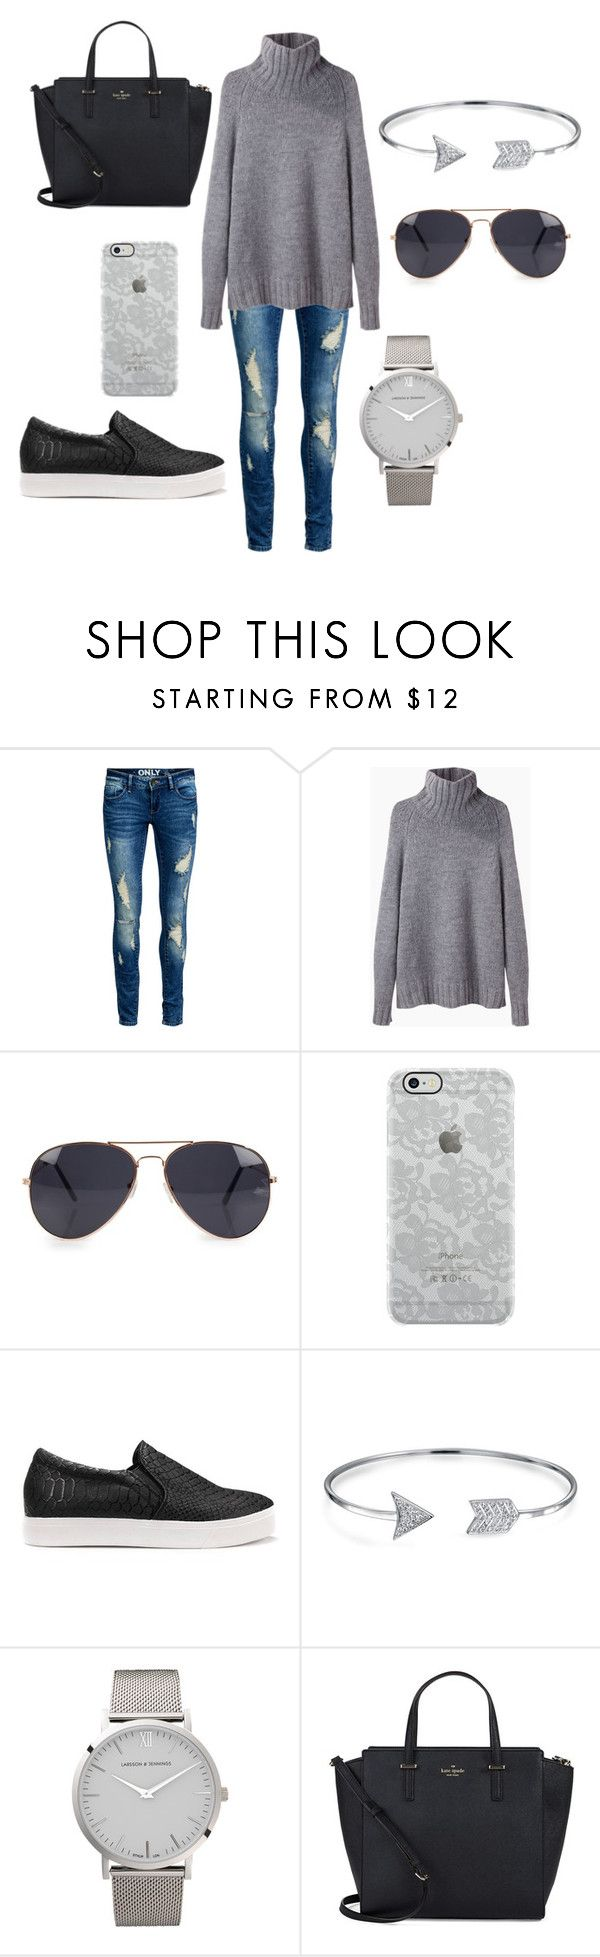 Greyscale by amanda-j-burke on Polyvore featuring La Garçonne Moderne, ONLY, Kate Spade, Larsson & Jennings, Bling Jewelry, Uncommon and NLY Accessories